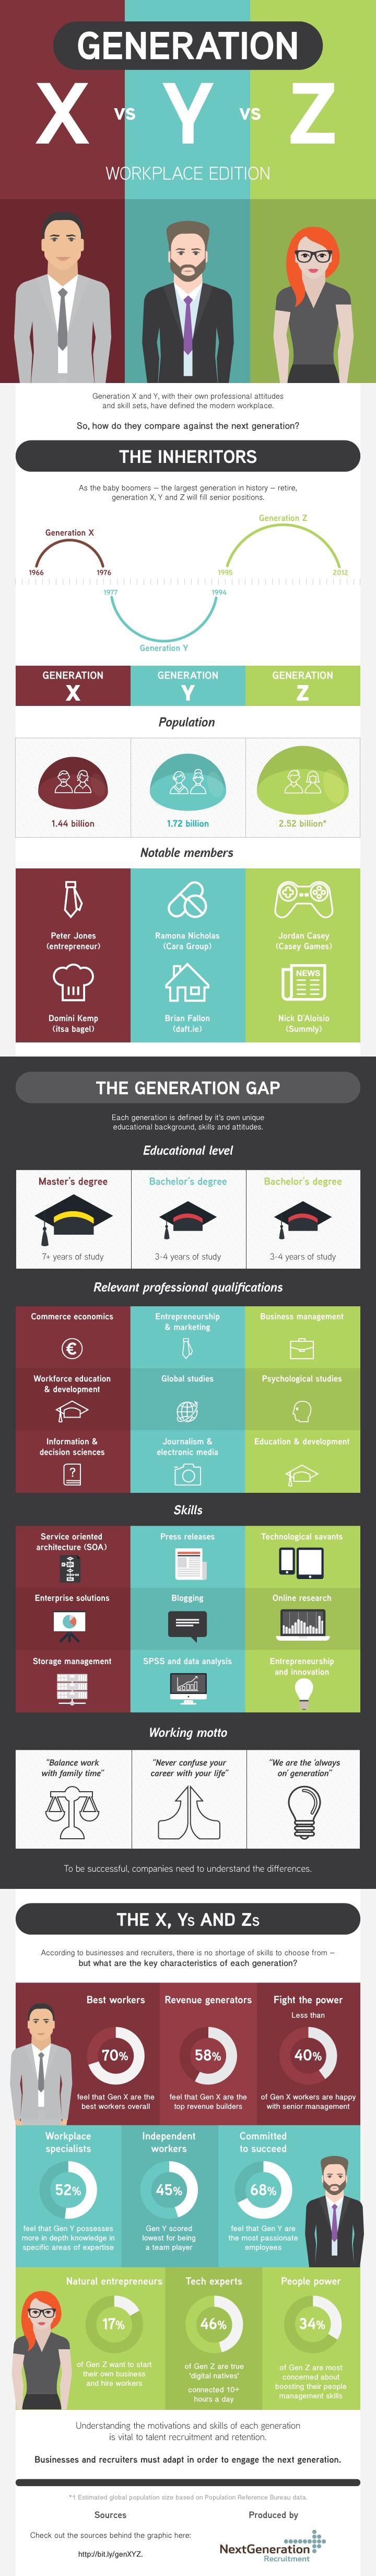 Generation X vs Y vs Z Workplace (#Infographic)